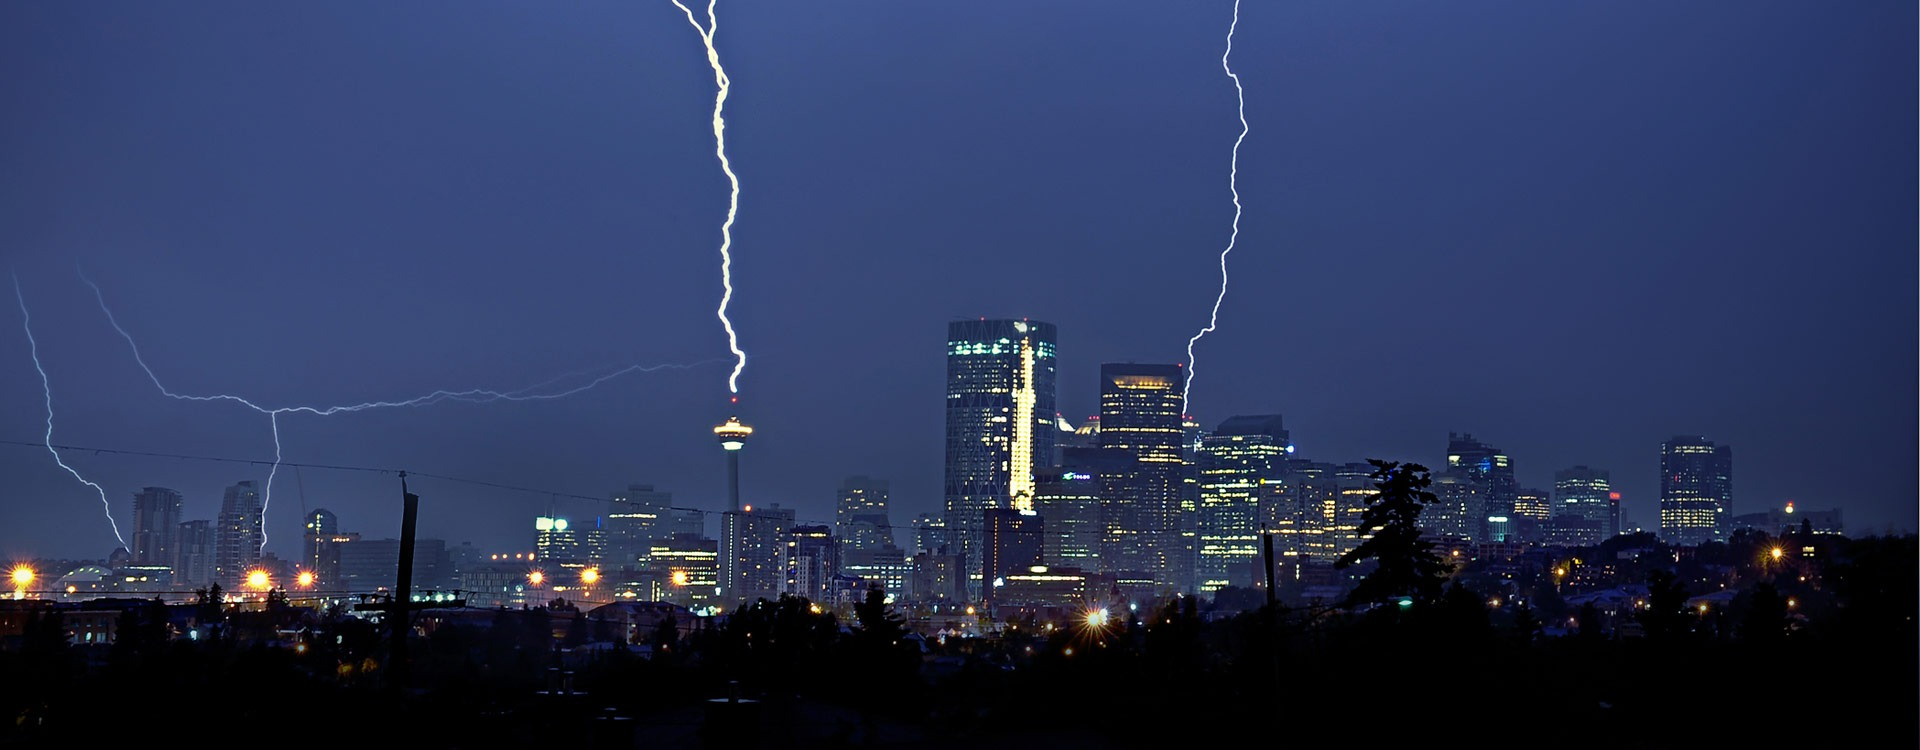 Calgary Skyline   Lightning IT Services   Alberta's Top Choice for IT Services